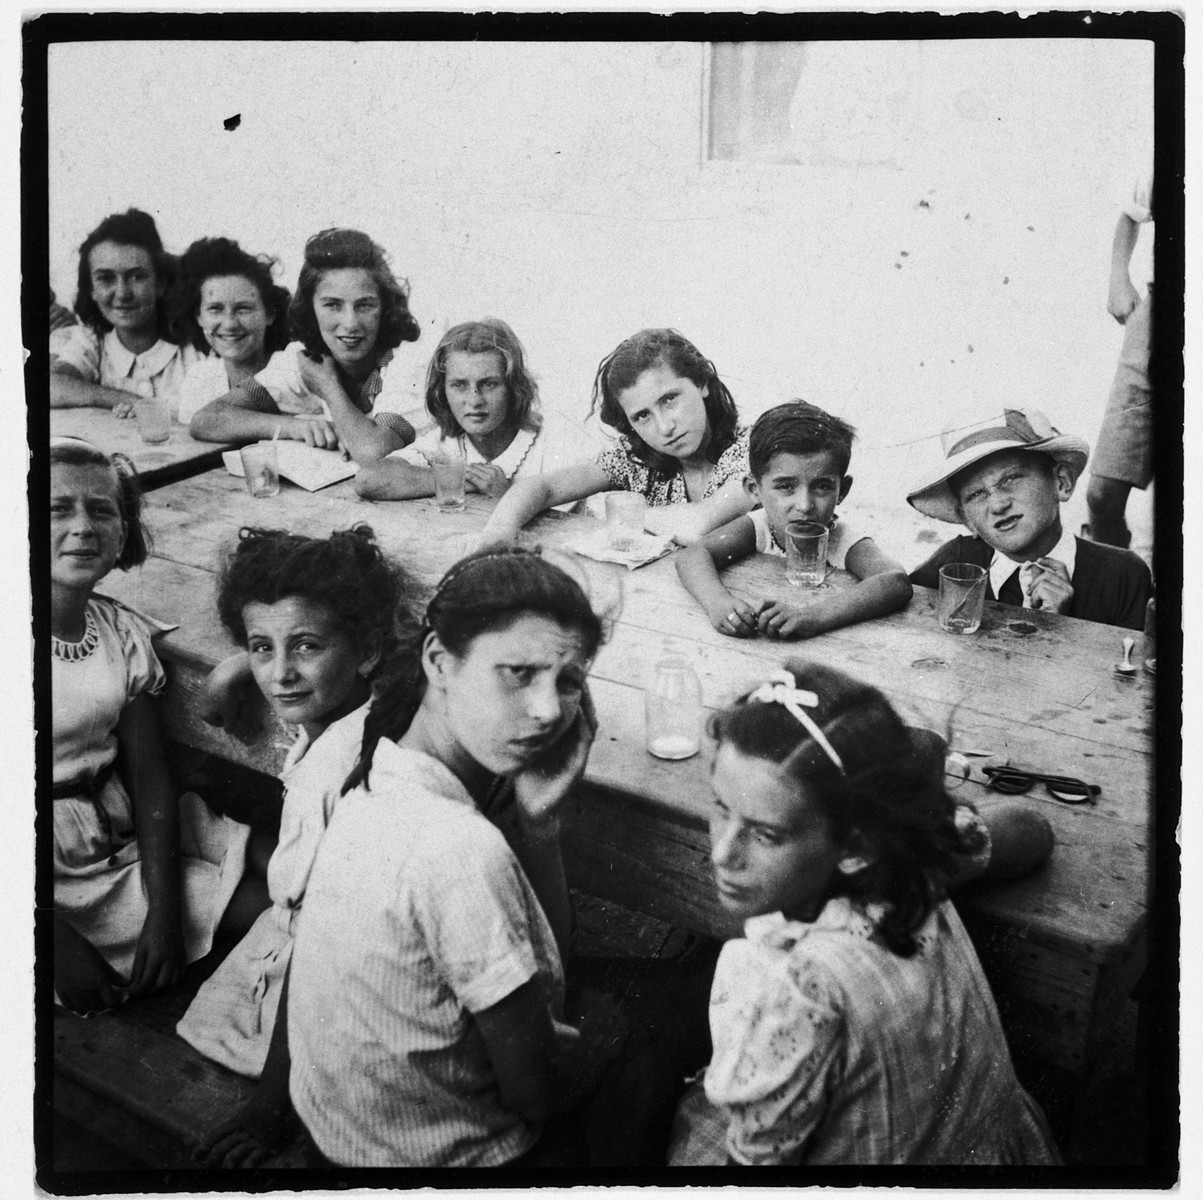 A group of children sits around a table in the Ferramonti internment camp.  Among those pictured is Walter Gruenberg.